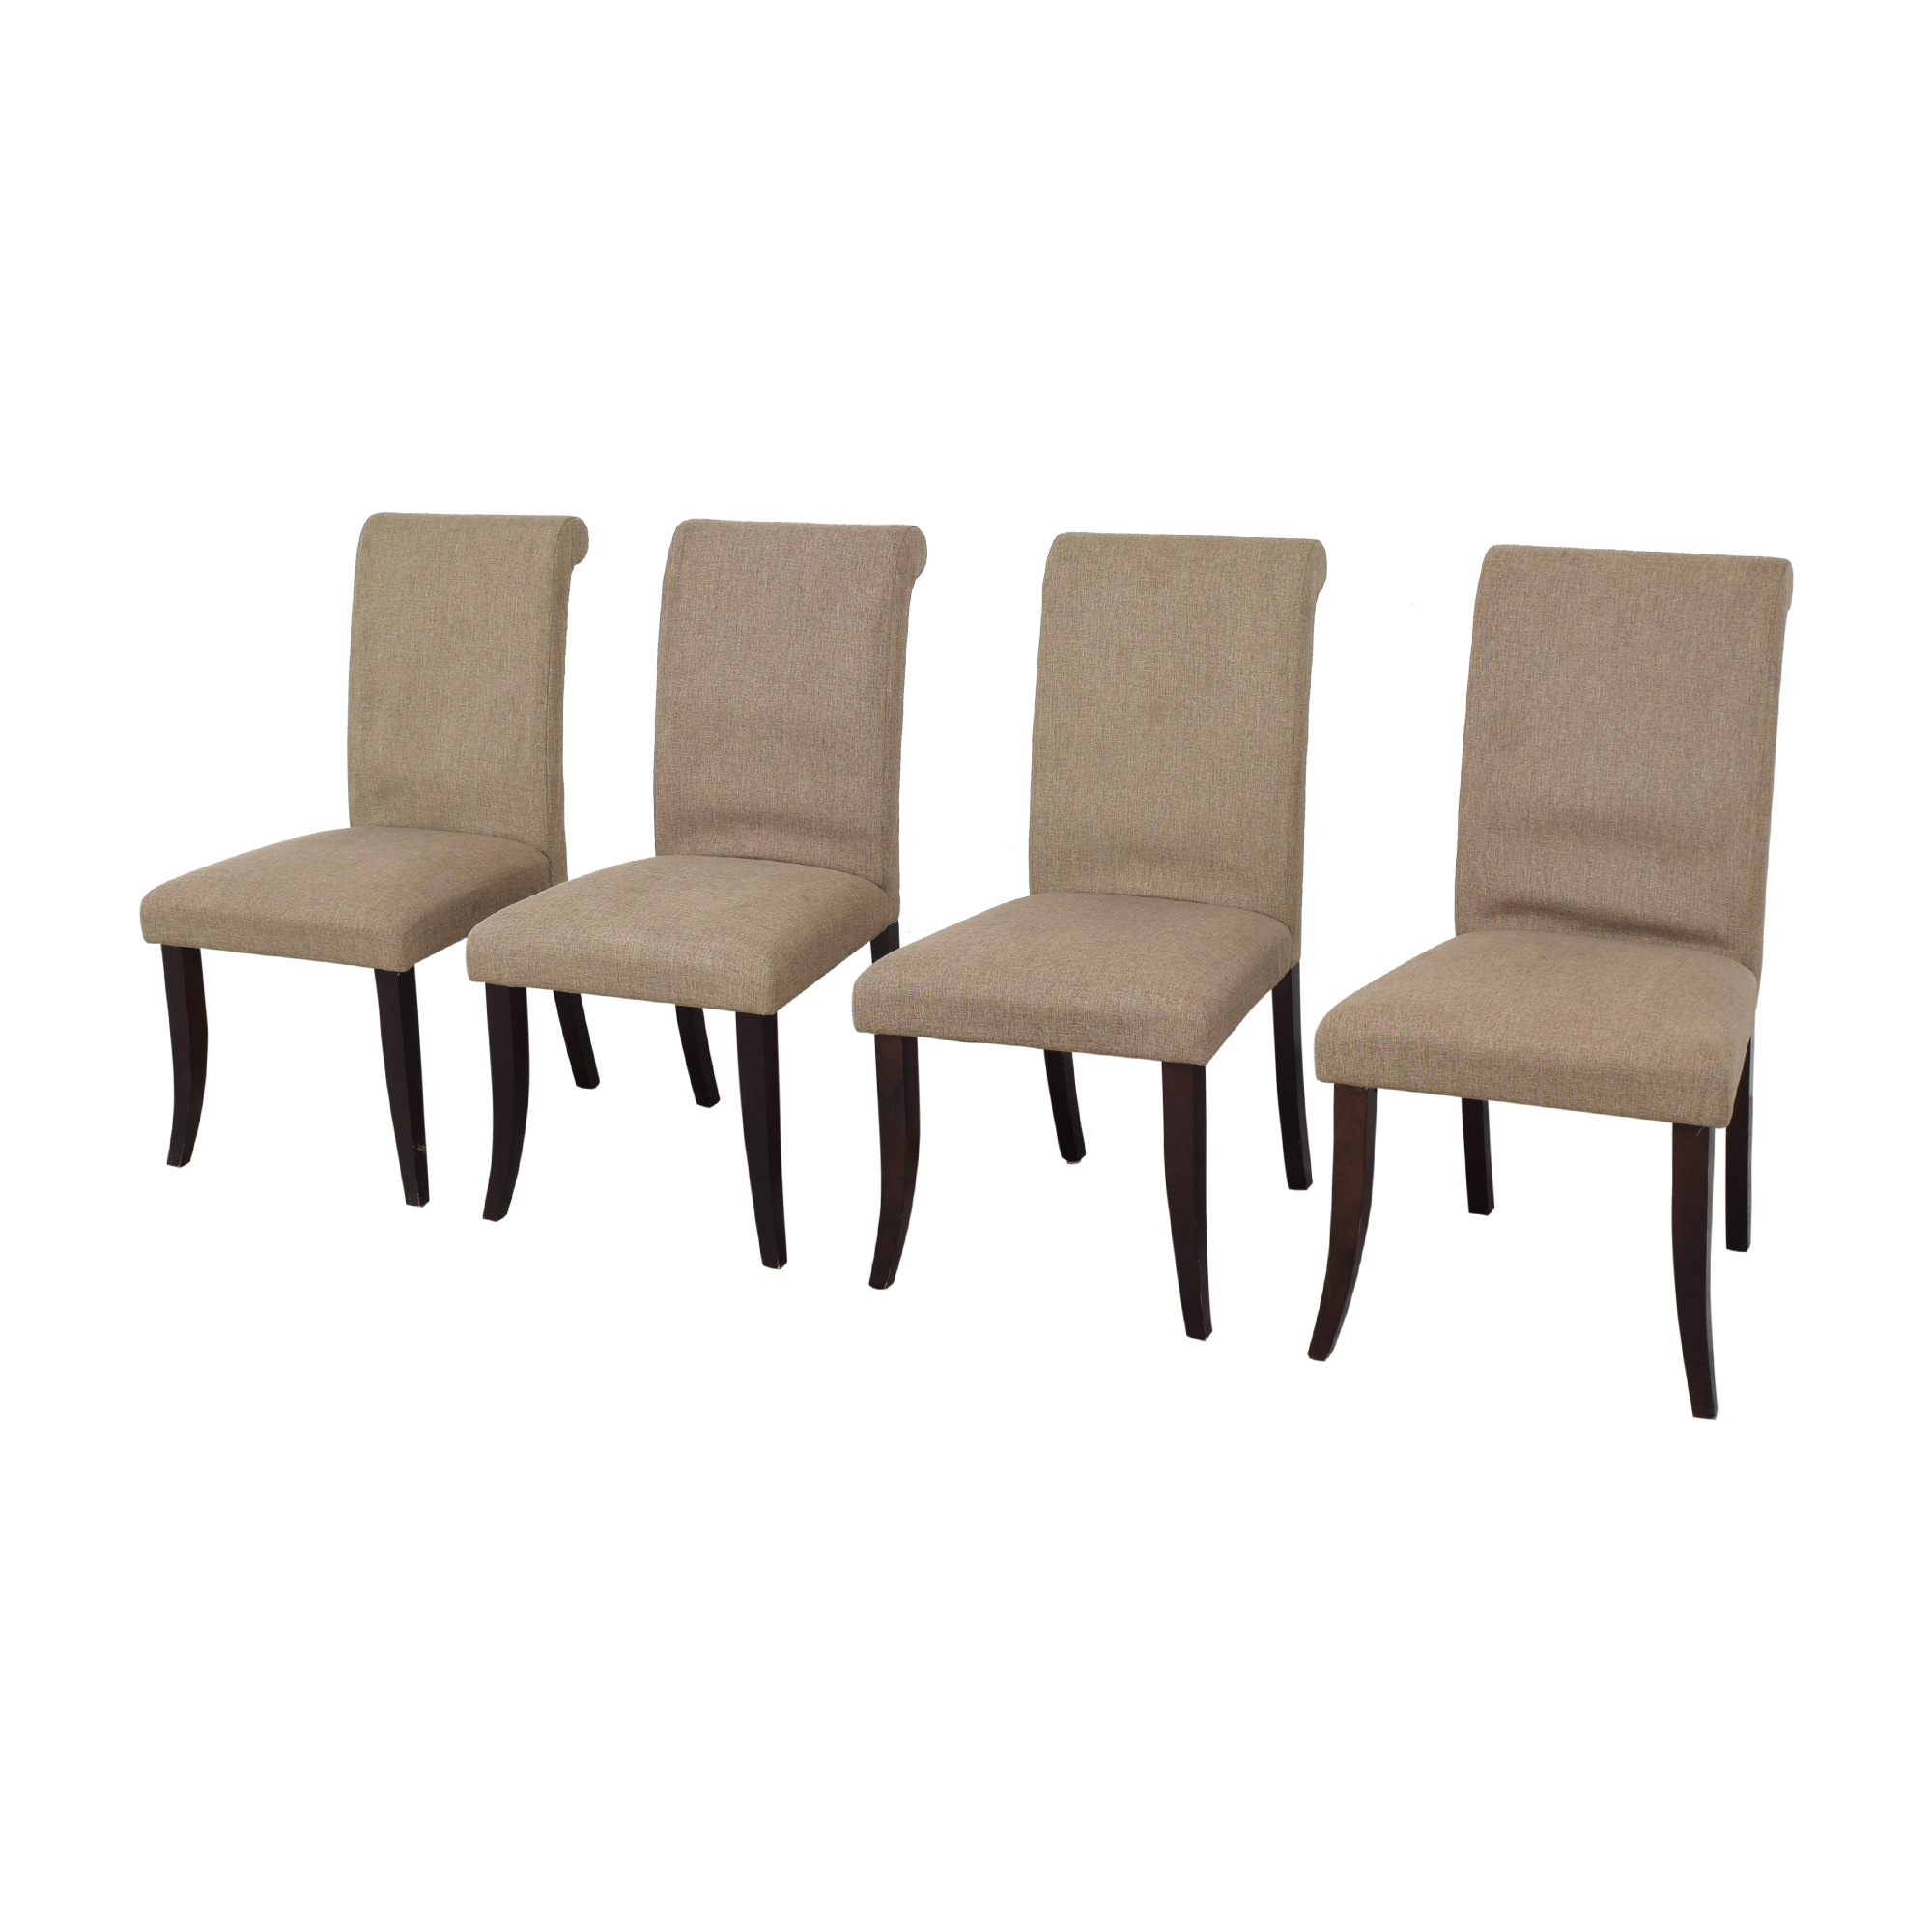 Macy's Macy's Dining Chairs discount